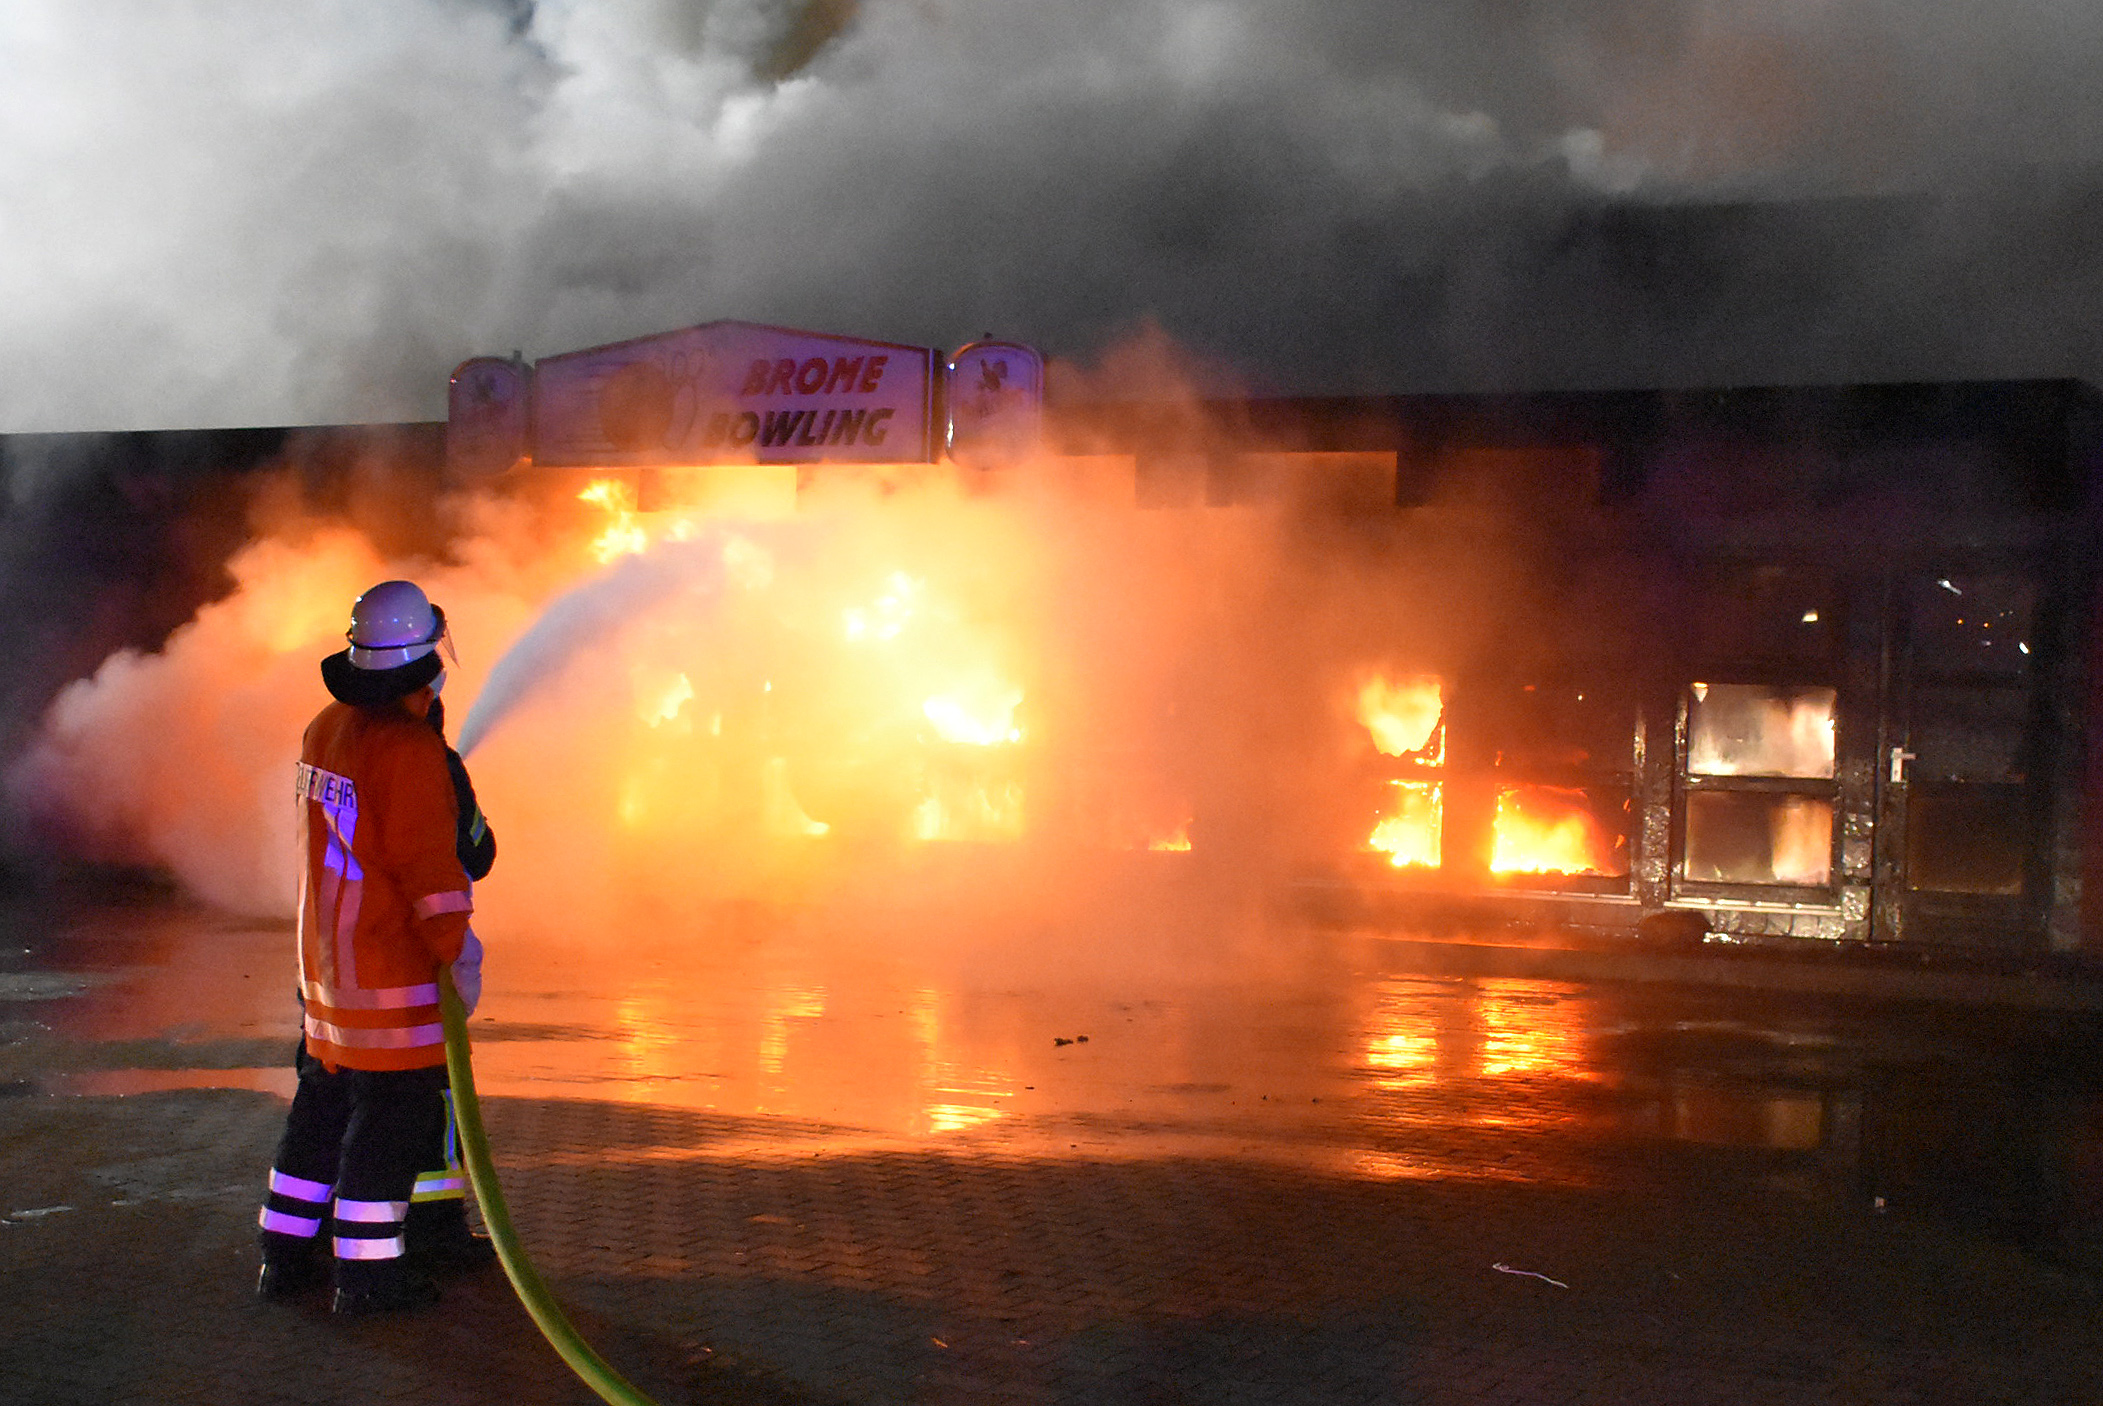 Bowling centre in Brome burnt out